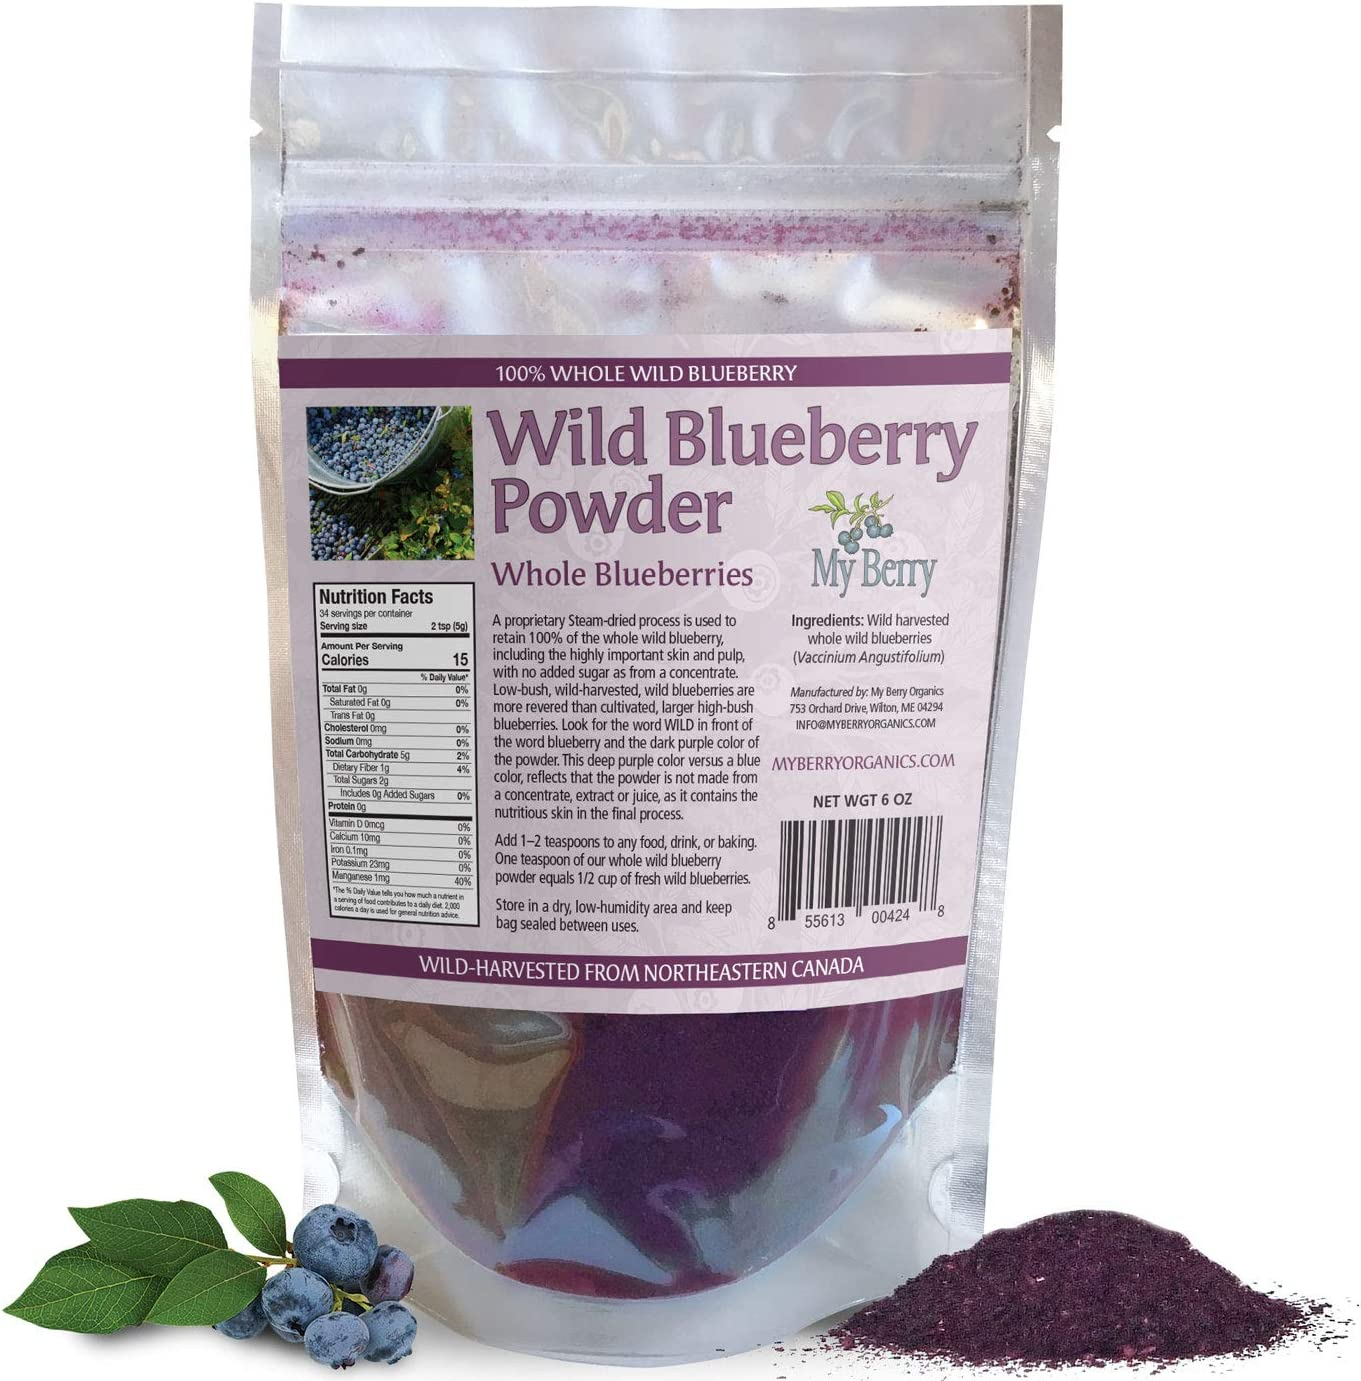 Amazon Com Wild Blueberry Powder 100 Whole Berry No Pesticides 6oz Grown In North America Not A Concentrate Extract Juice Powder Freeze Dried Nor A Bilberry Woman Owned Small Company Health Personal Care